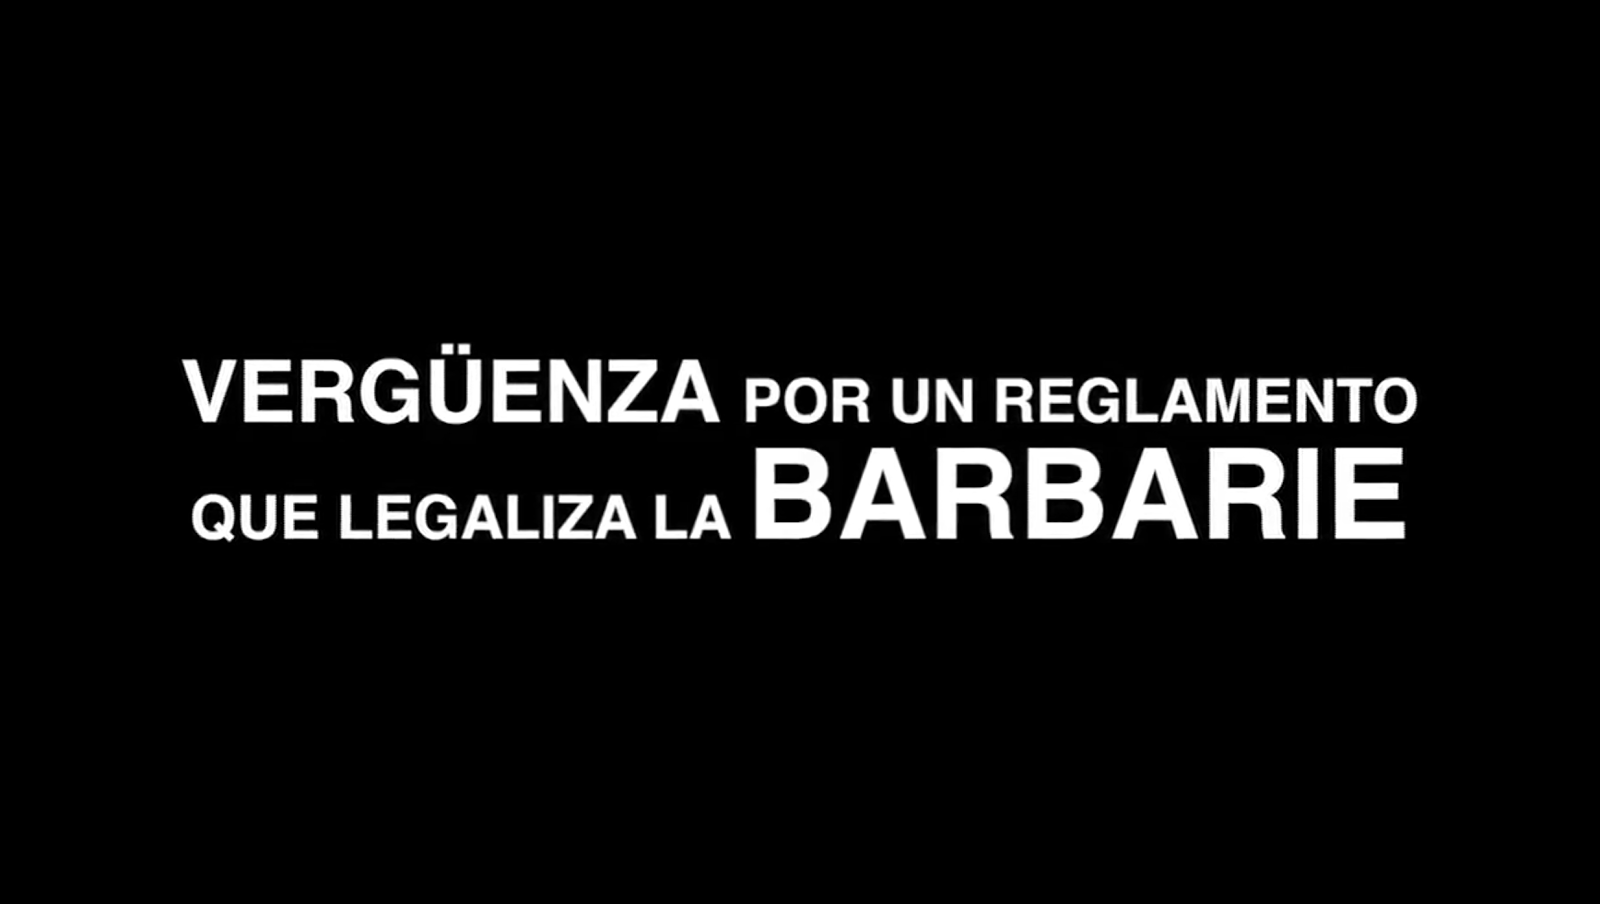 La barbàrie no es pot regular: #ReglamentoVergüenza